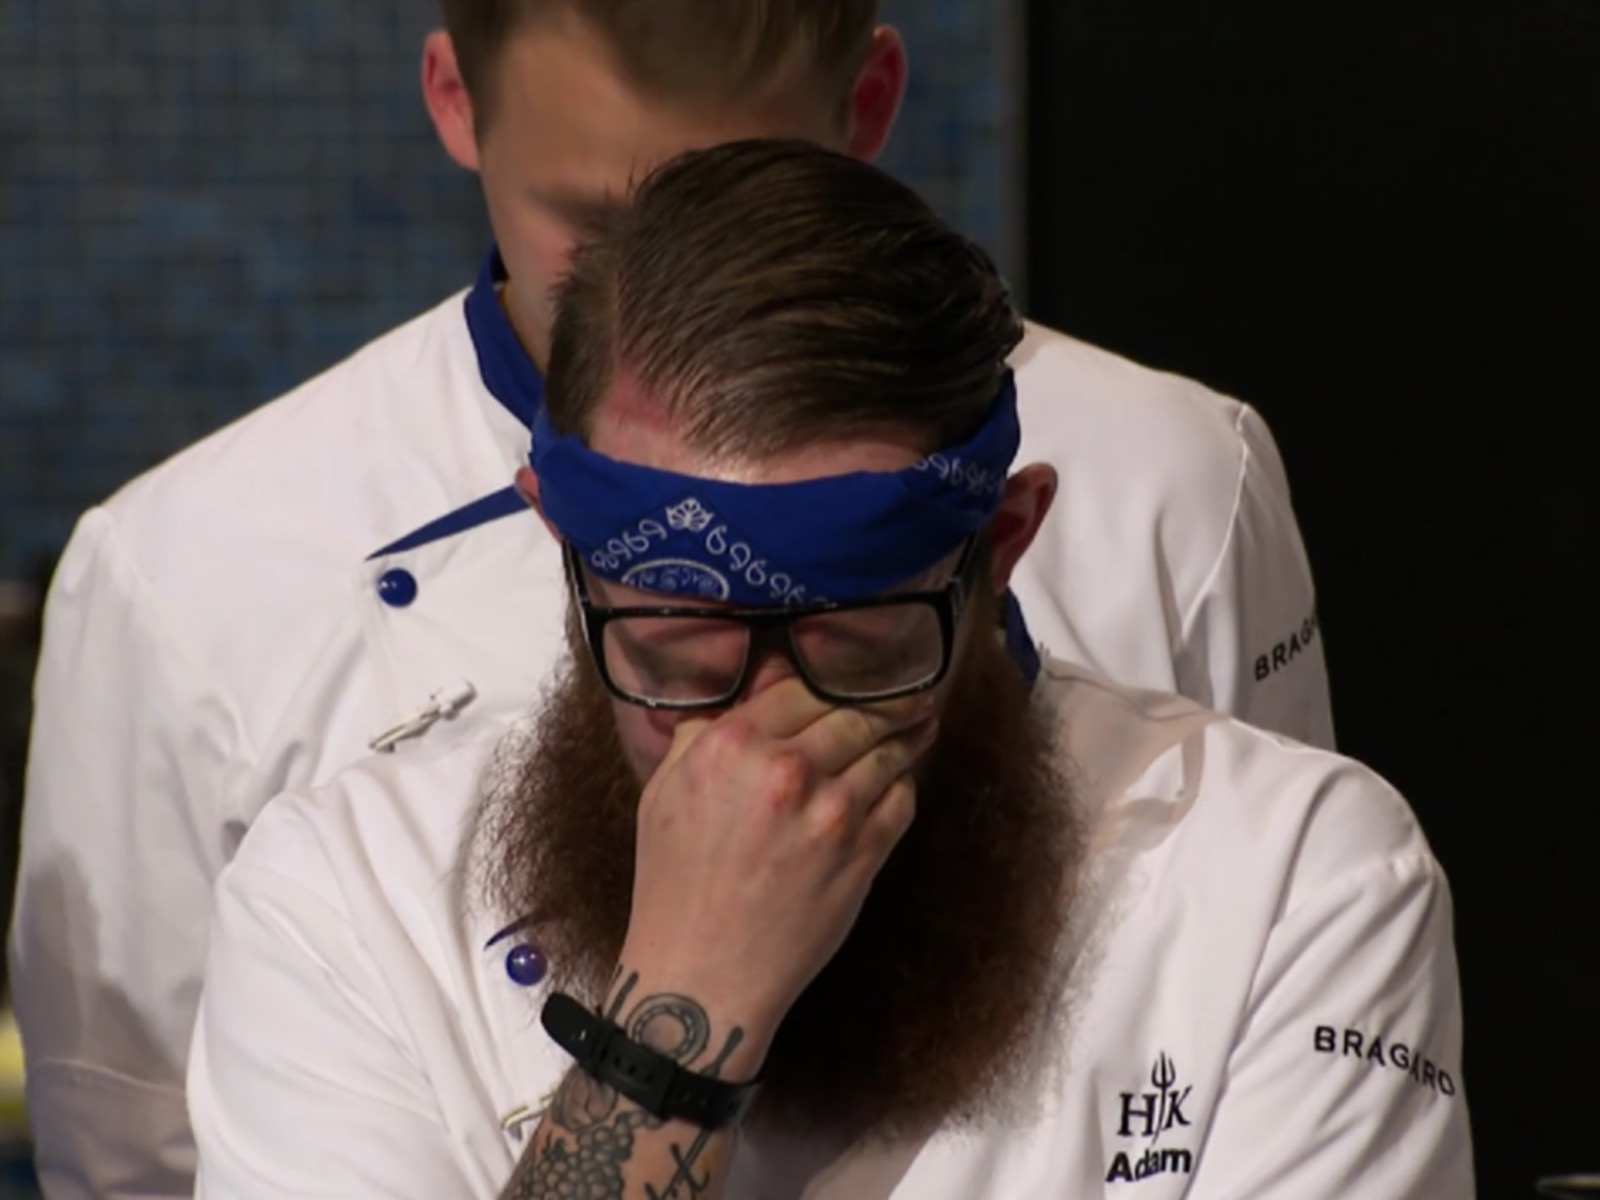 Distressed male reality show contestant covering face